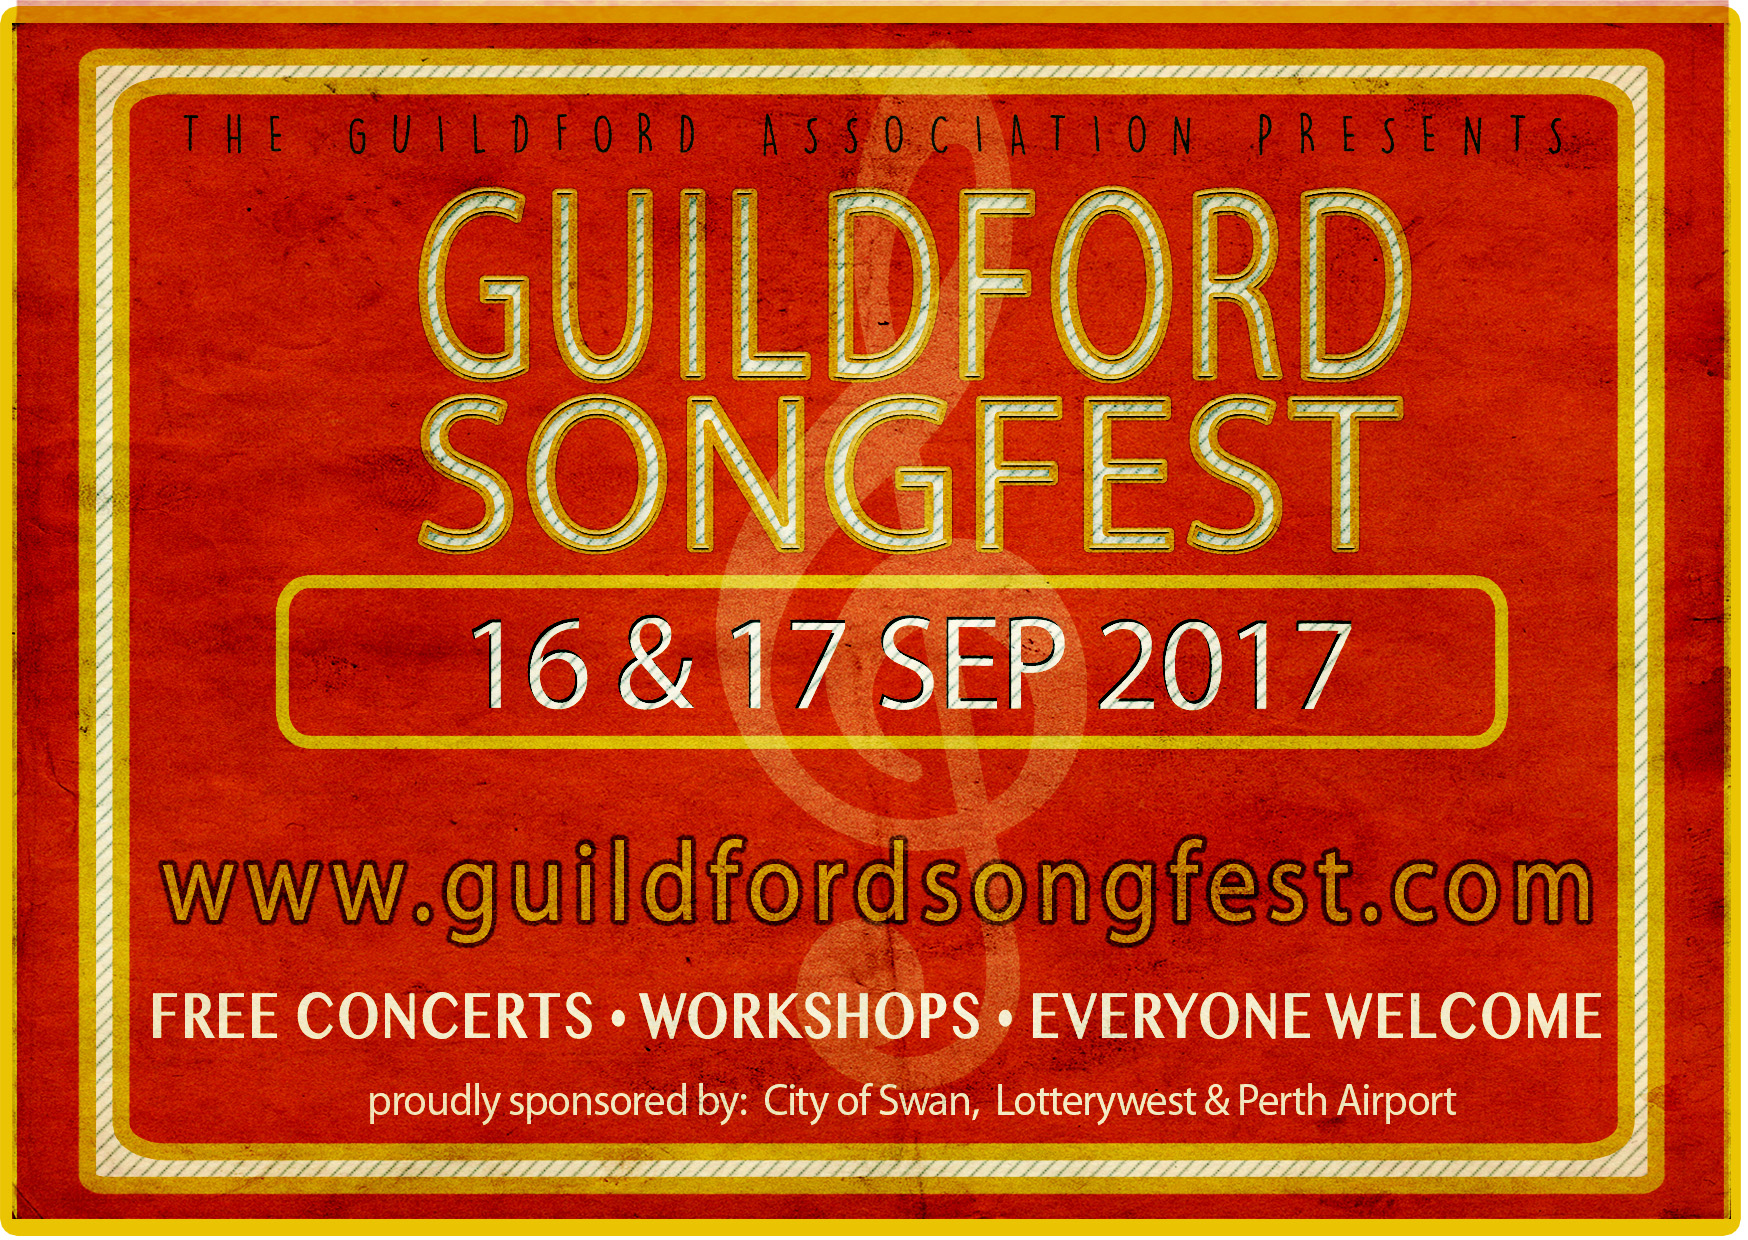 Guildford Songfest